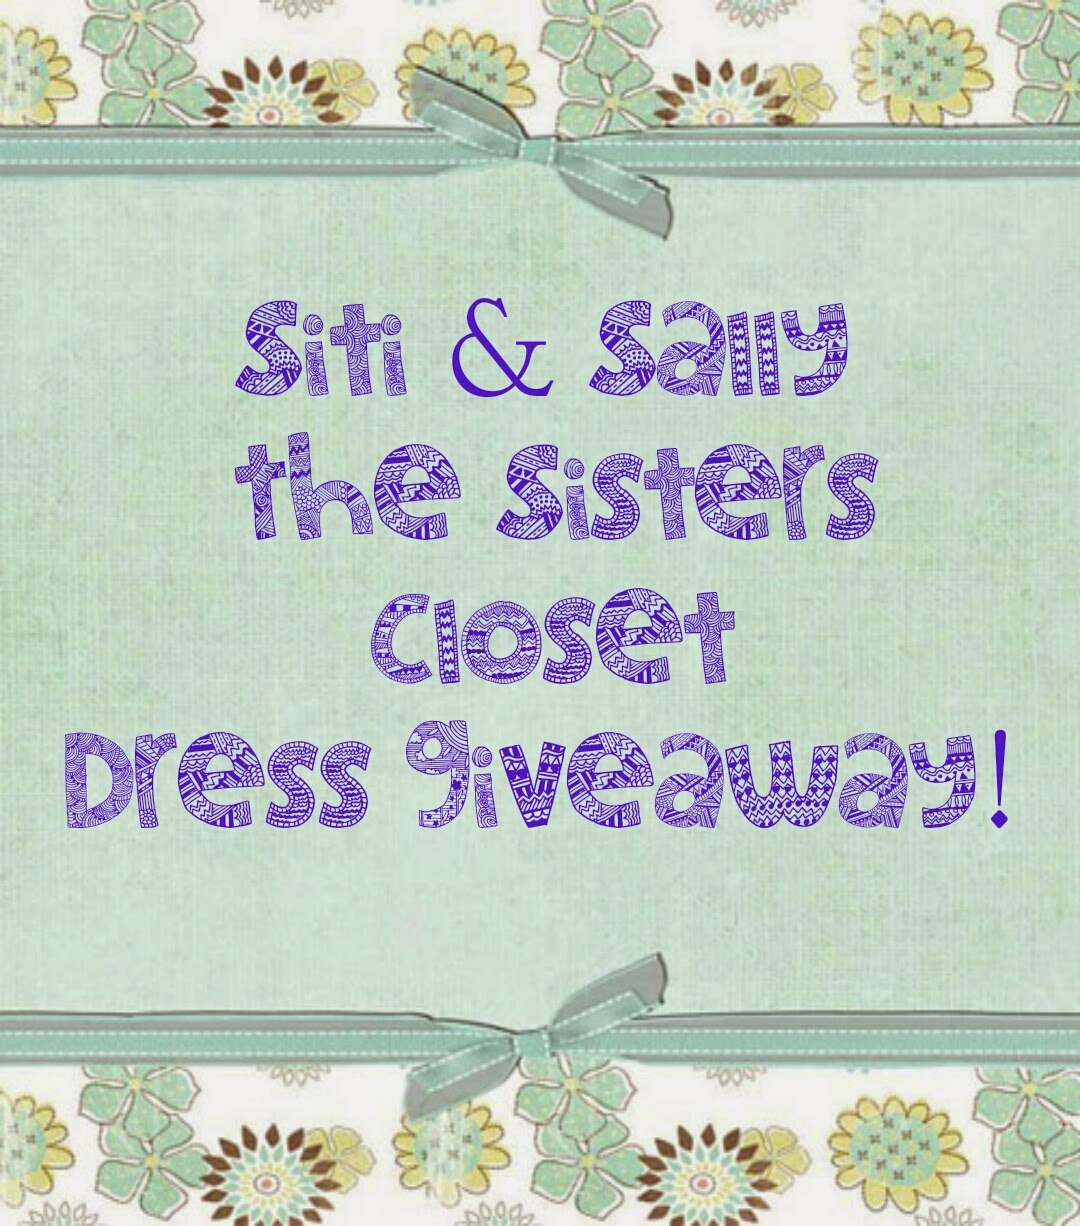 Siti Sally The Sisters Closet Dress Giveaway